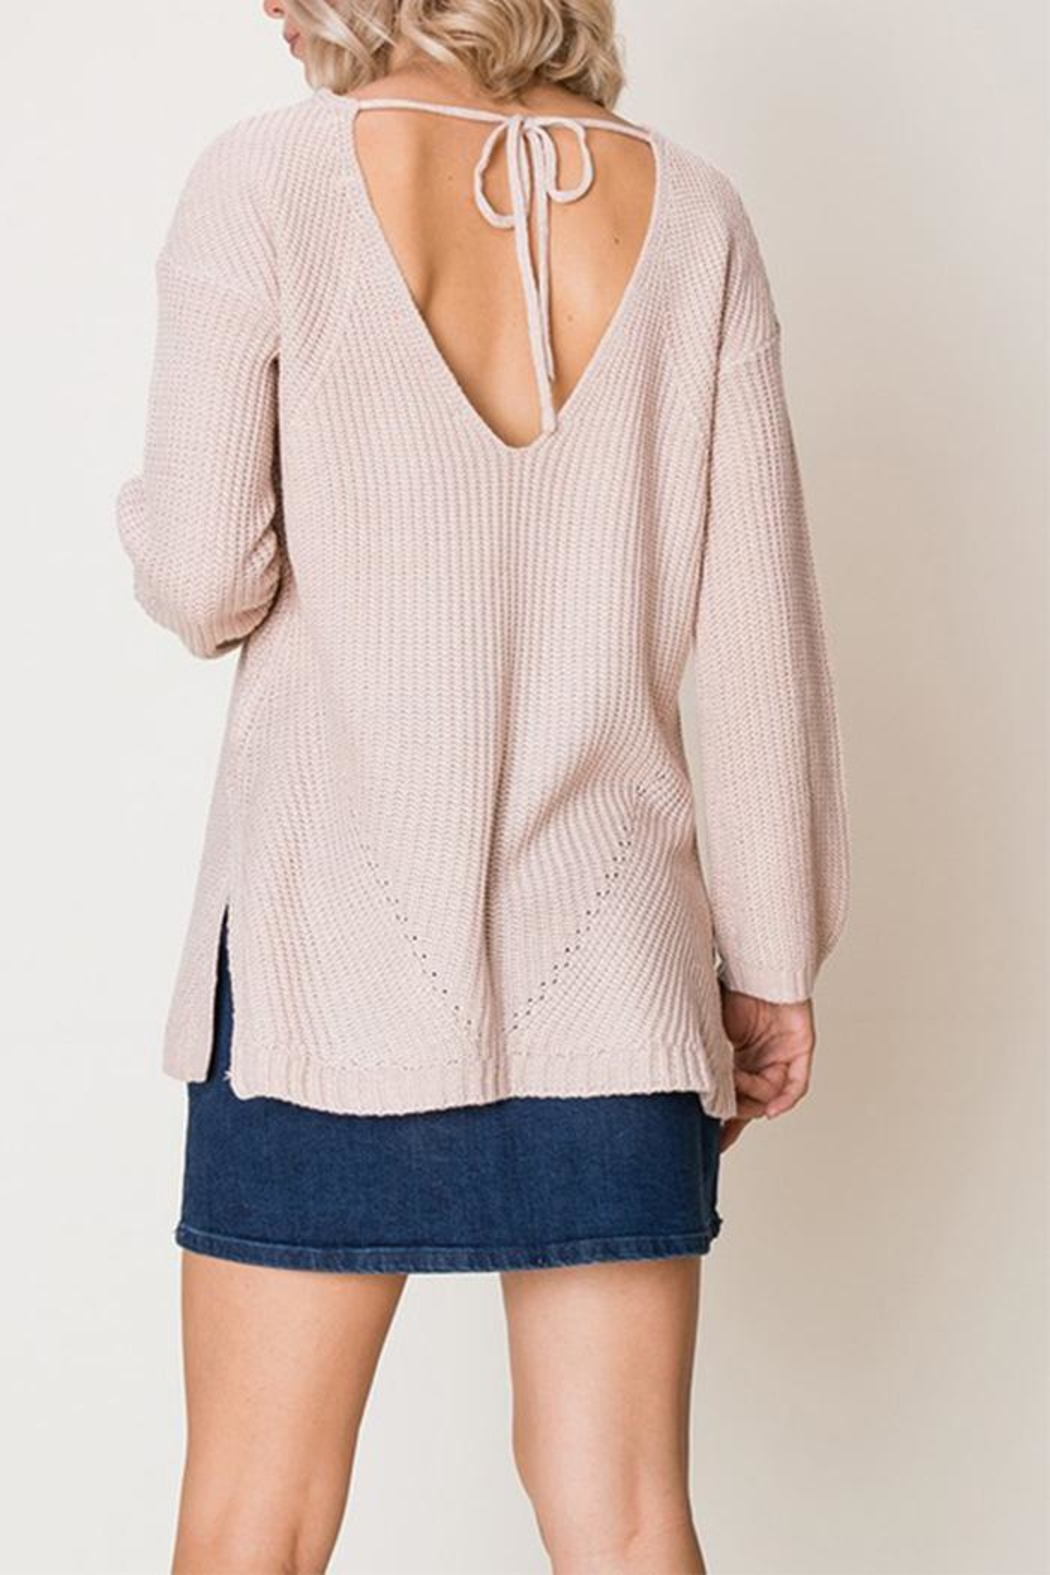 HYFVE Blush Sweater - Side Cropped Image